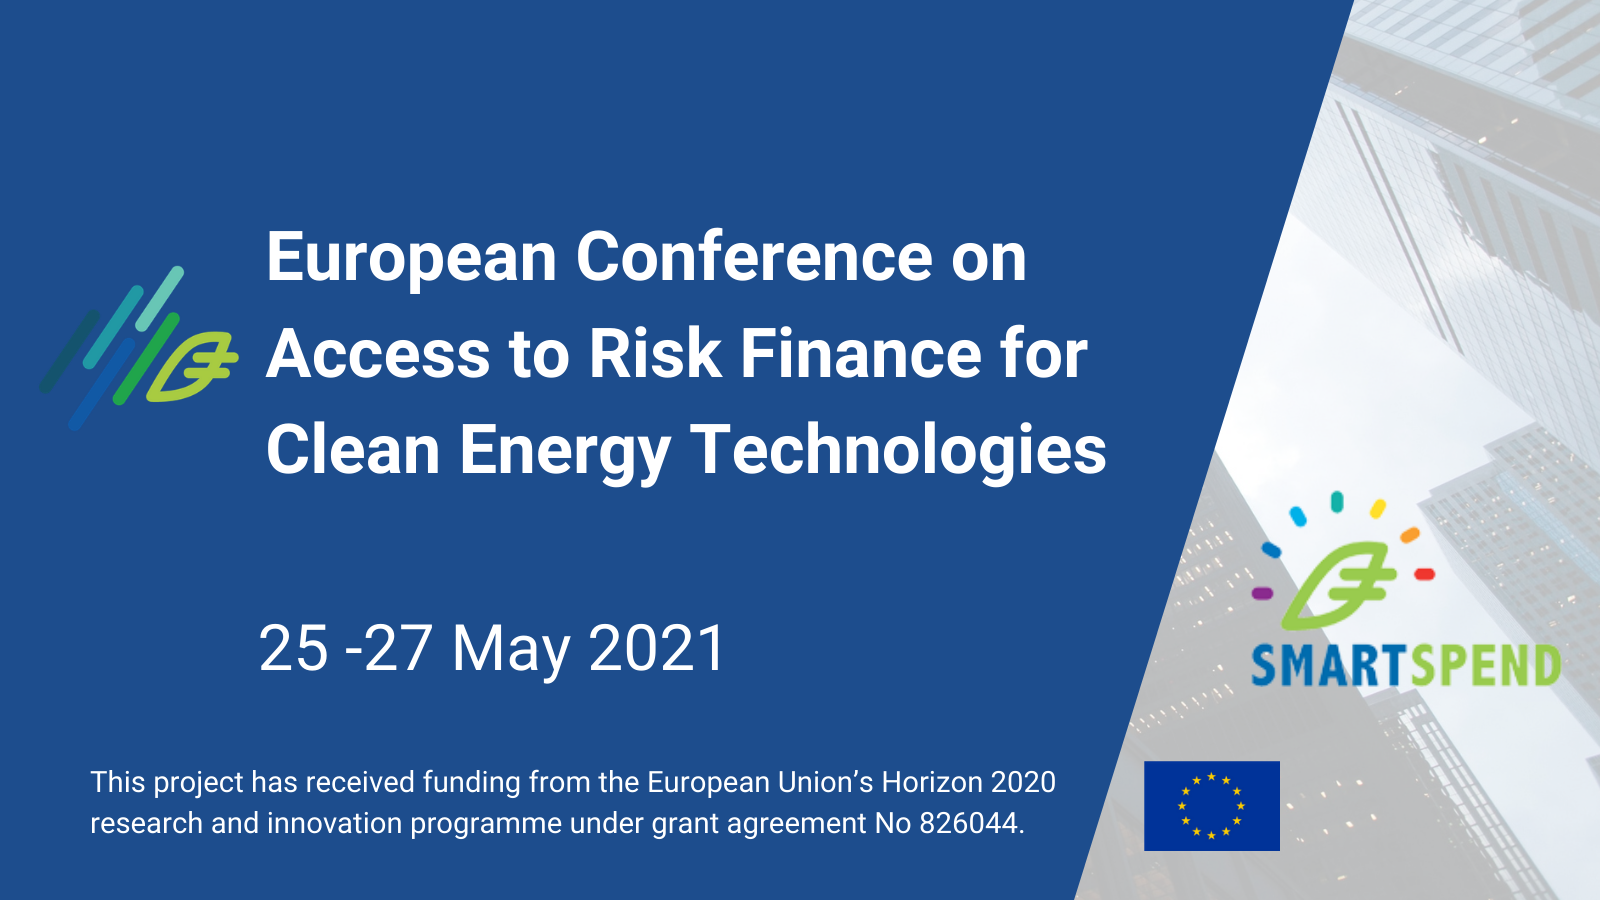 EU Conference on Access to Risk Finance for Clean Energy Technologies